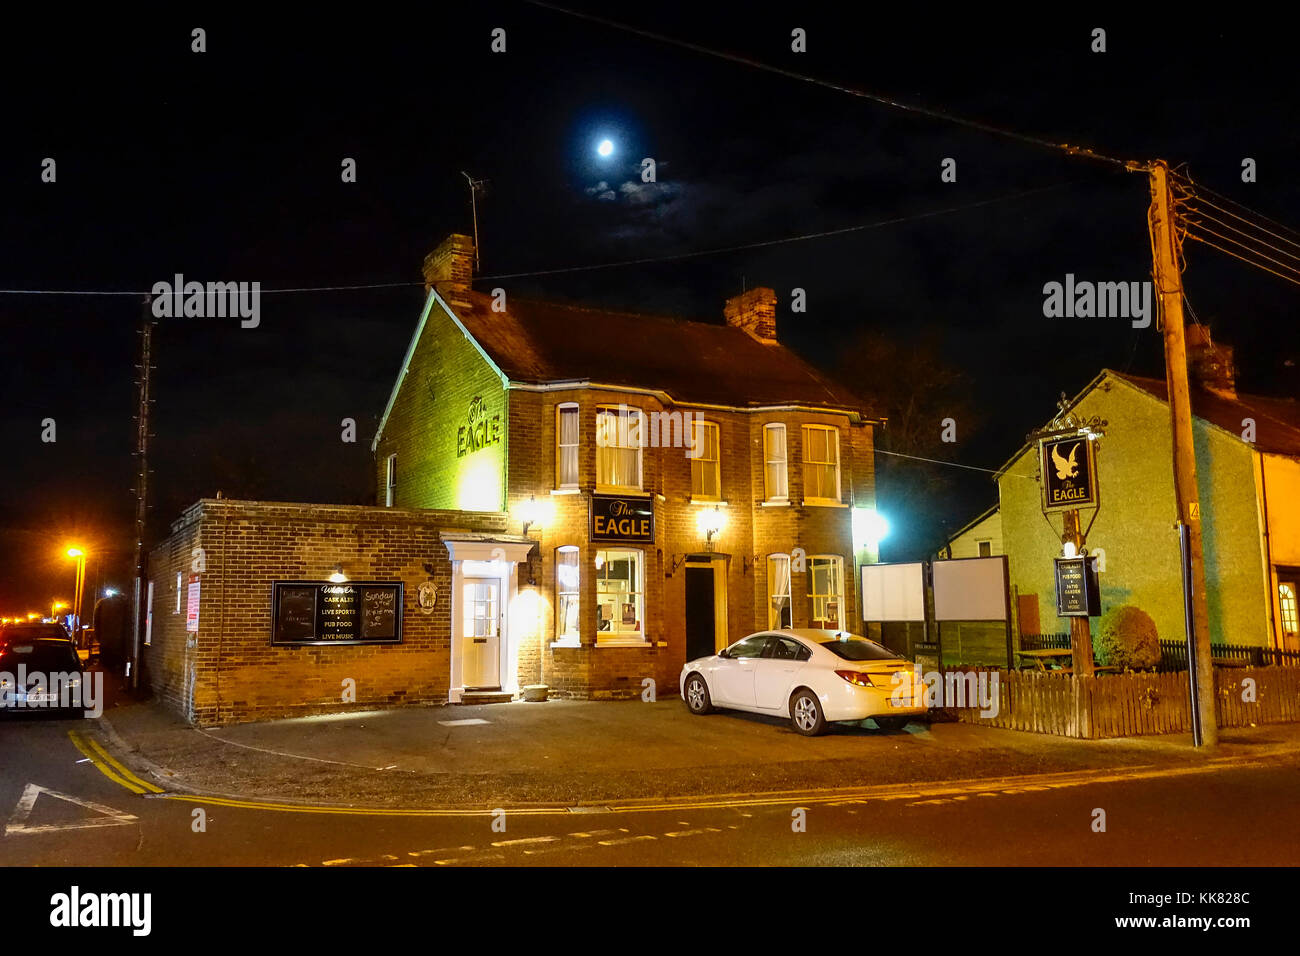 The Eagle Public House at night, Coggeshall Road, Braintree, Essex Stock Photo